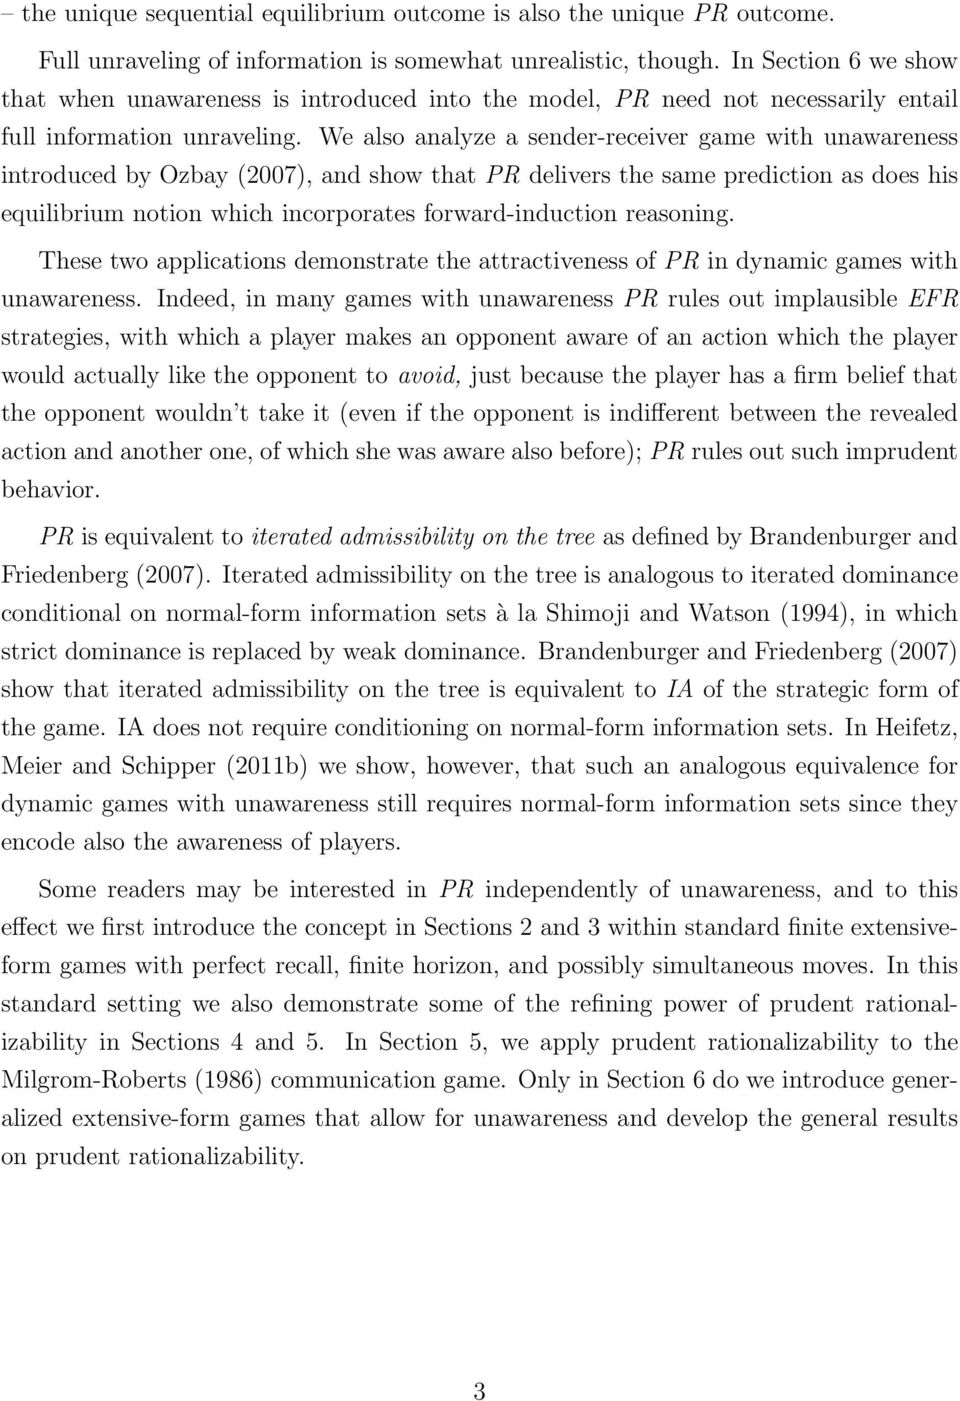 We also analyze a sender-receiver game with unawareness introduced by Ozbay (2007), and show that PR delivers the same prediction as does his equilibrium notion which incorporates forward-induction